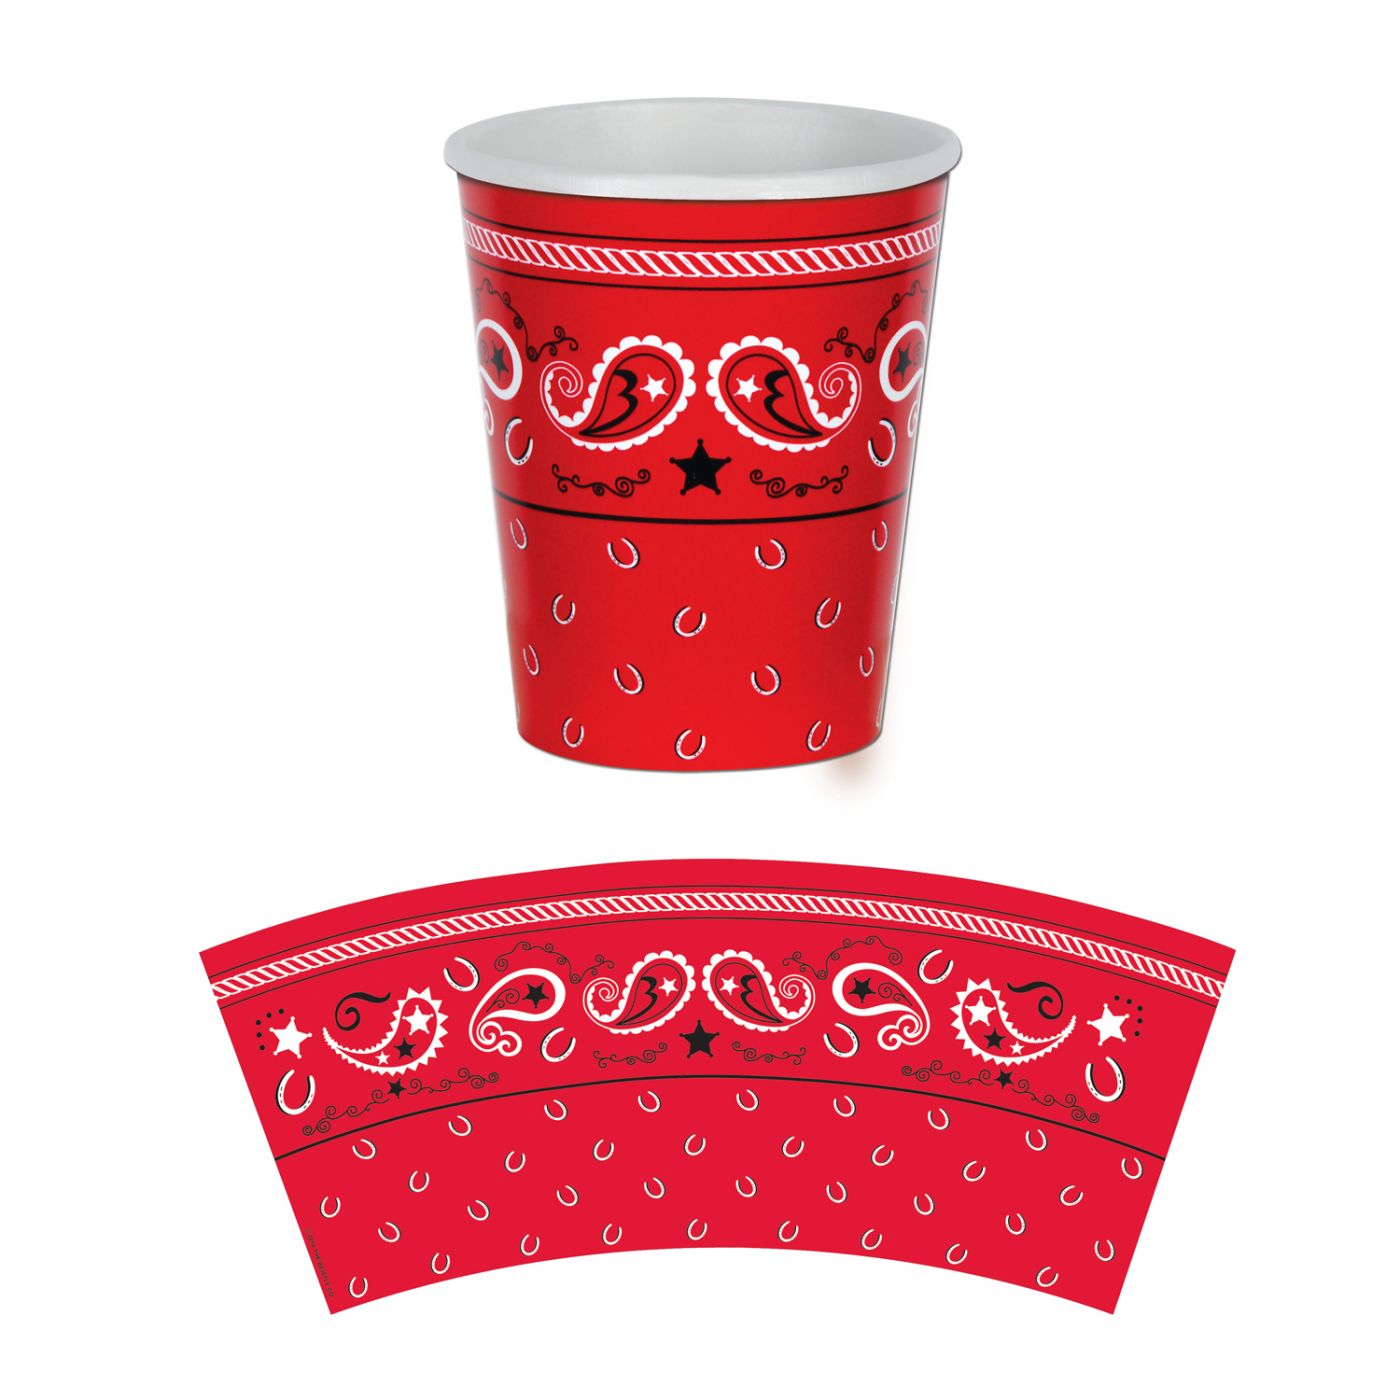 Image of Bandana Beverage Cups